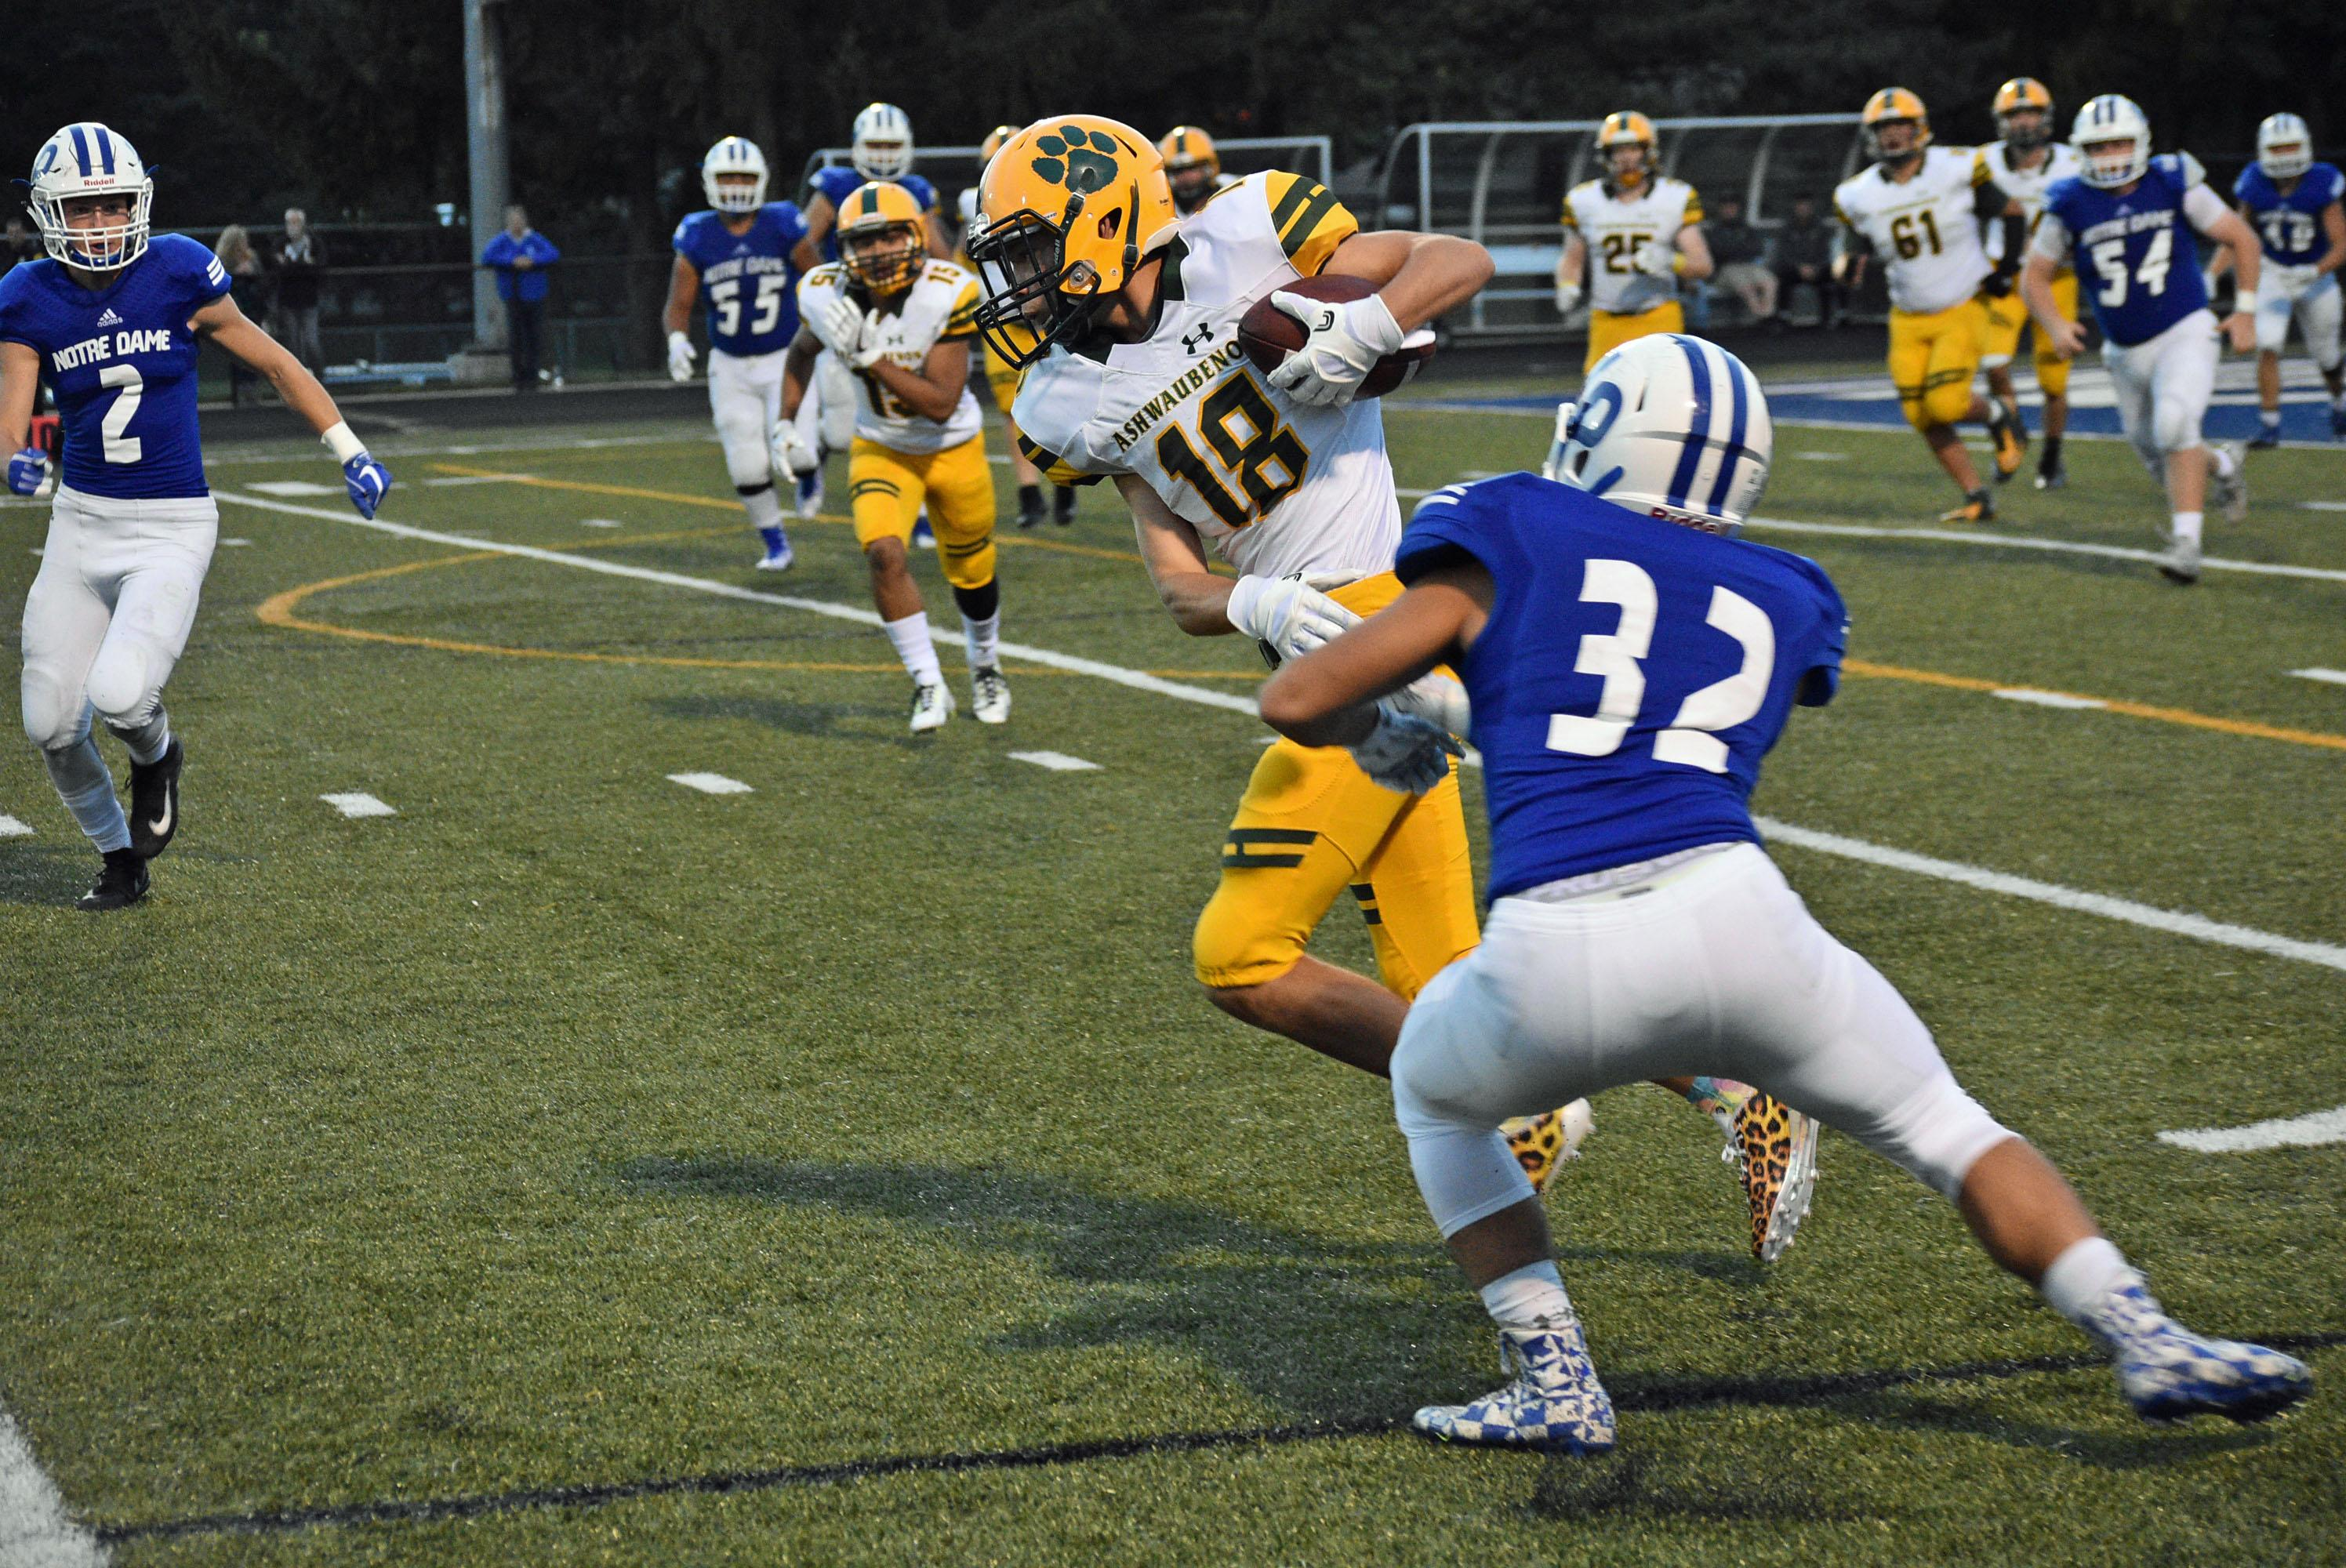 Notre Dame hosted Ashwaubenon in a Fox River Classic Conference football game Friday. (Doug Ritchay/WLUK)